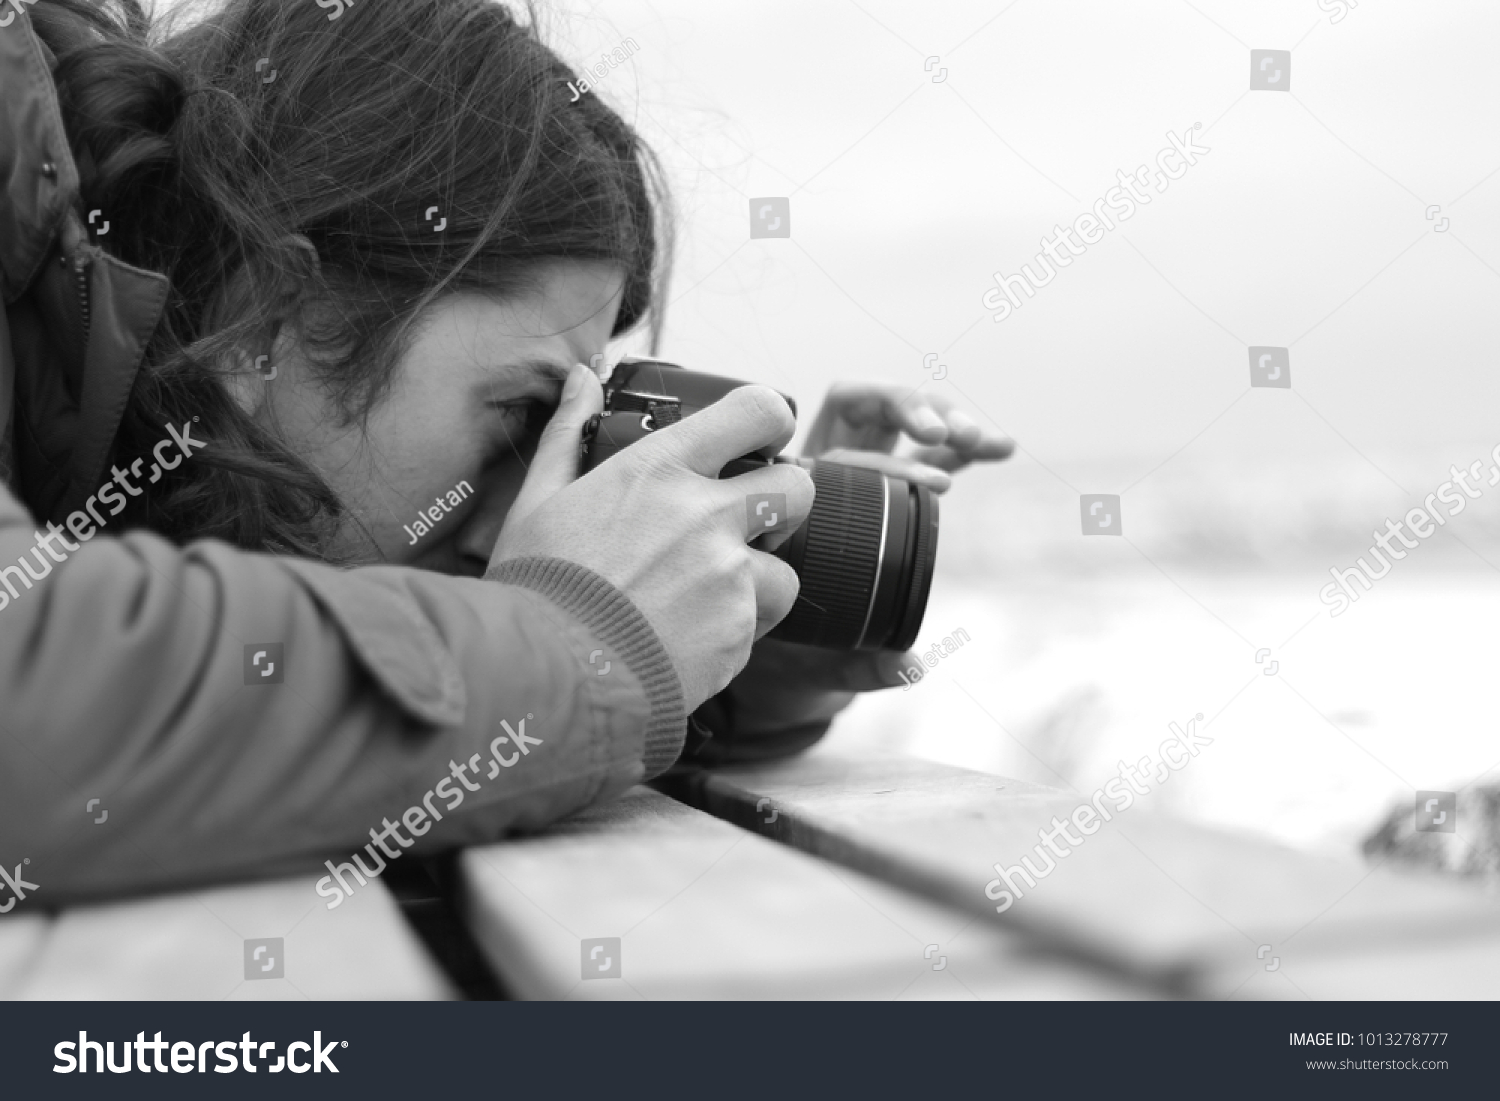 The photographer man is shooting in black and white photo